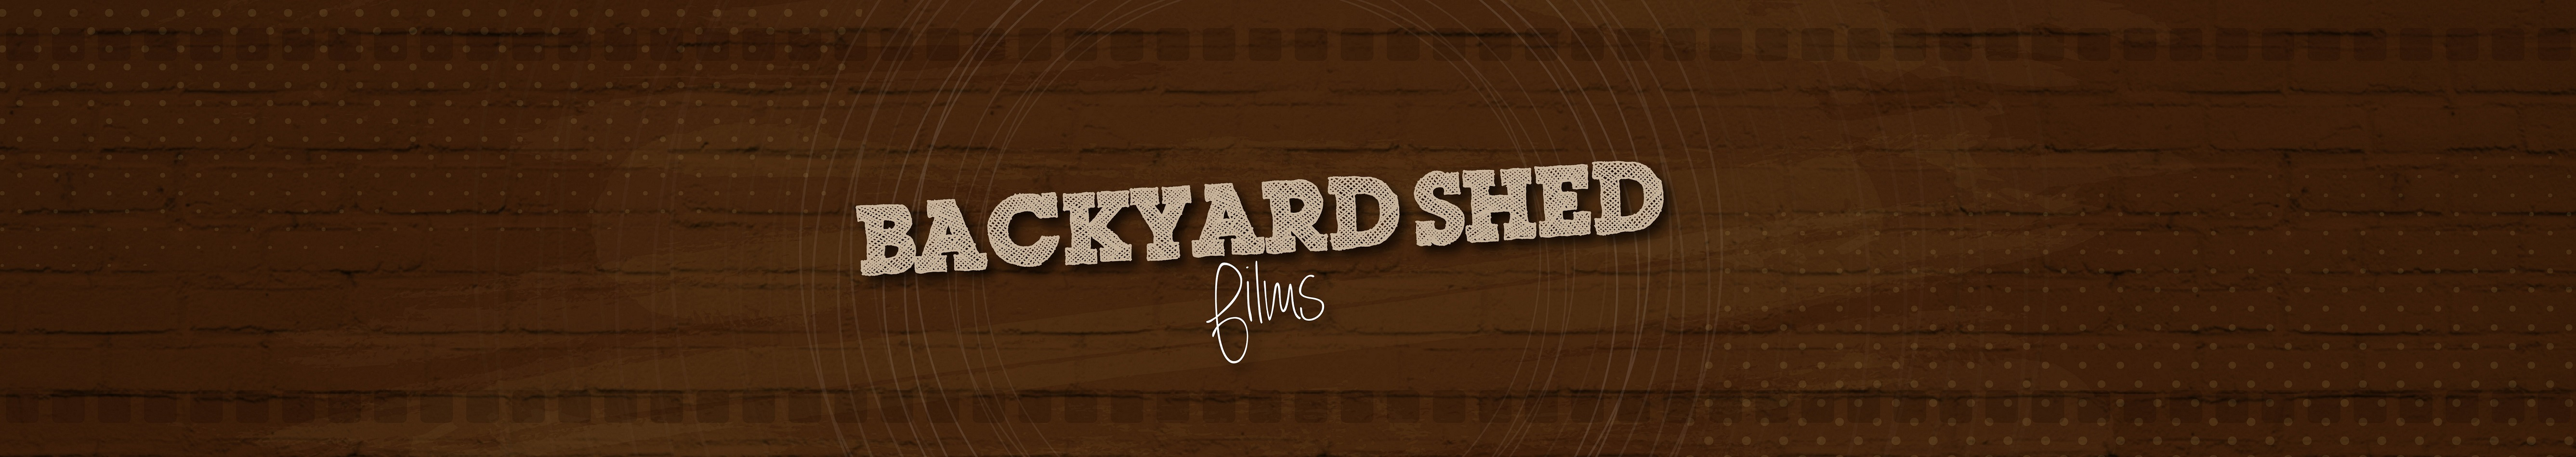 Commercials | Backyard Shed Films